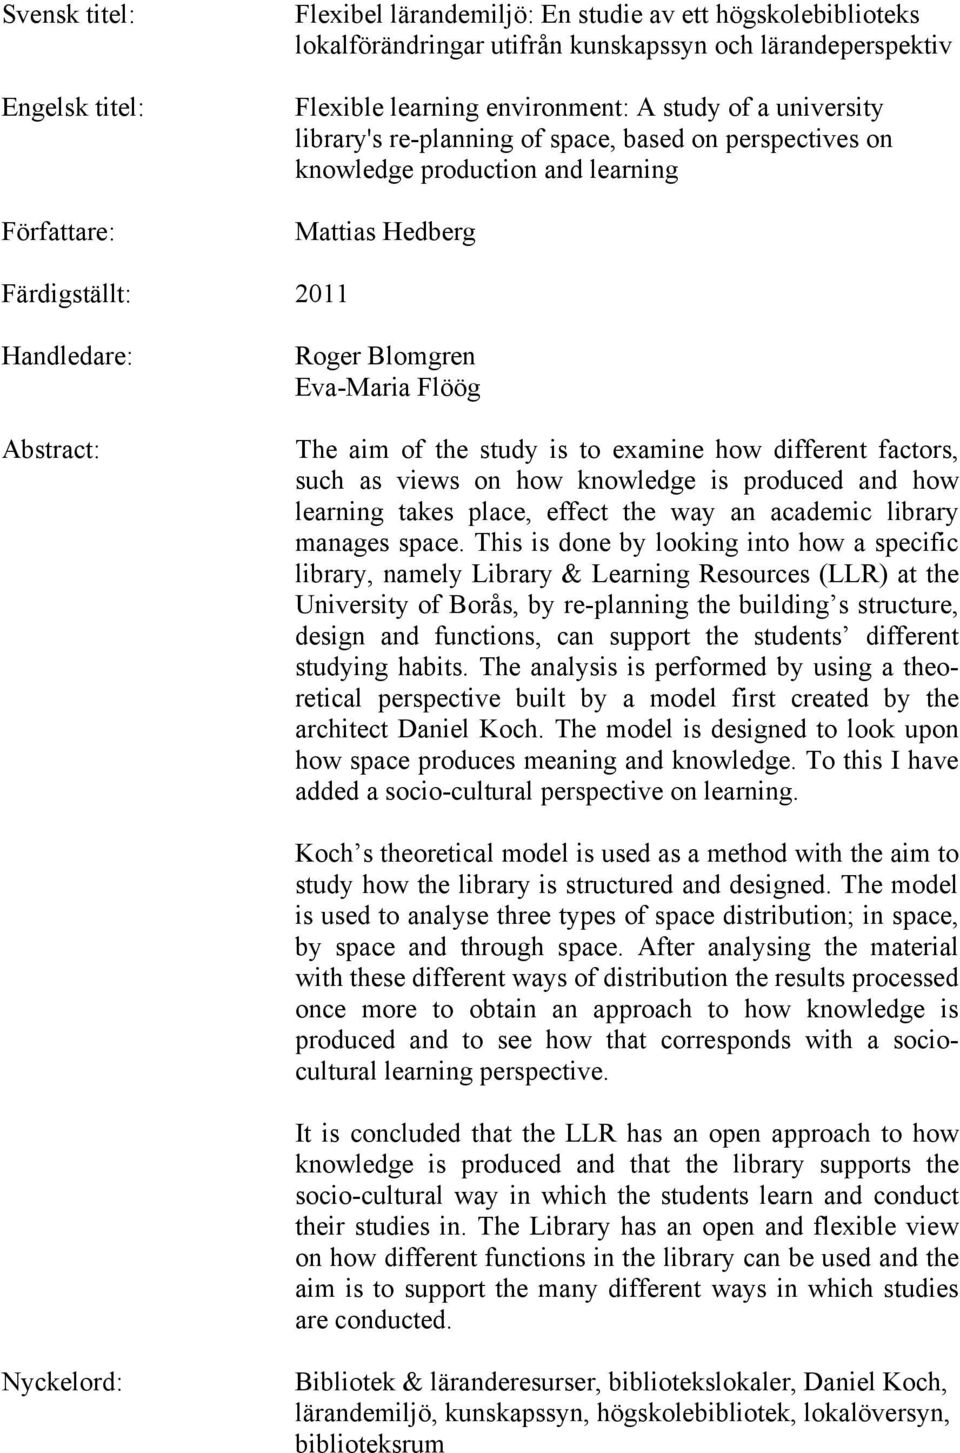 aim of the study is to examine how different factors, such as views on how knowledge is produced and how learning takes place, effect the way an academic library manages space.